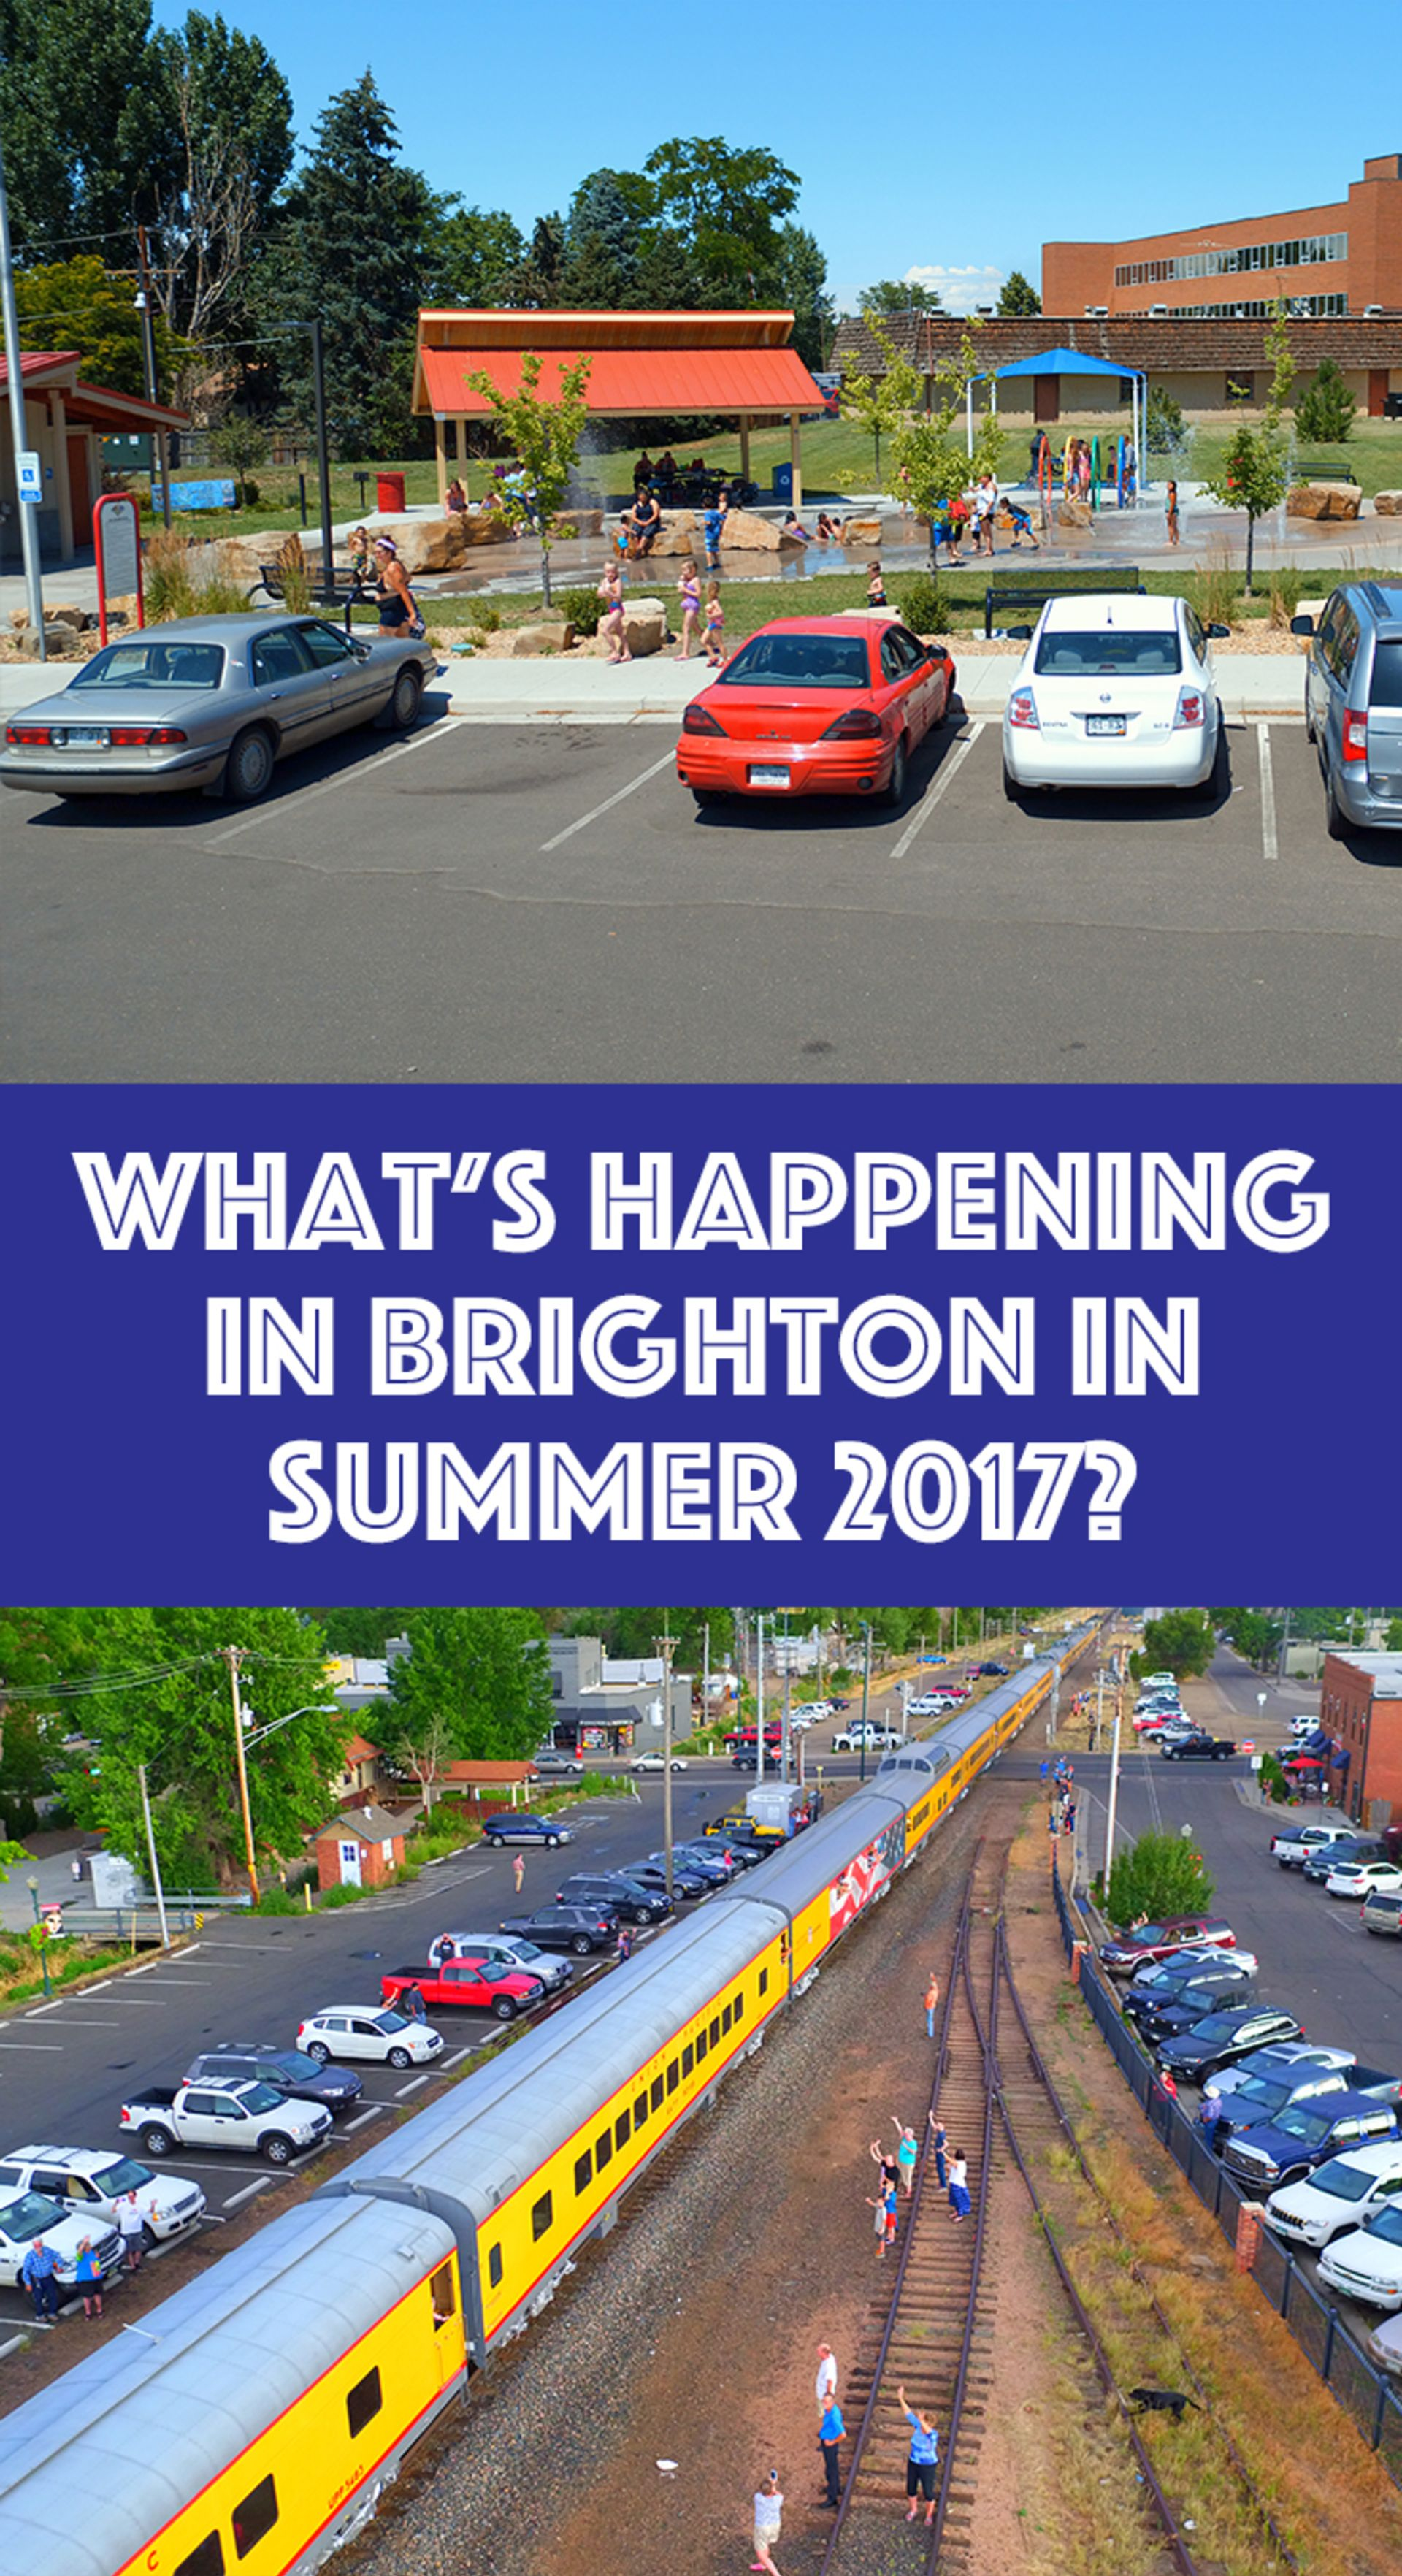 What's Happening in Brighton in Summer 2017?